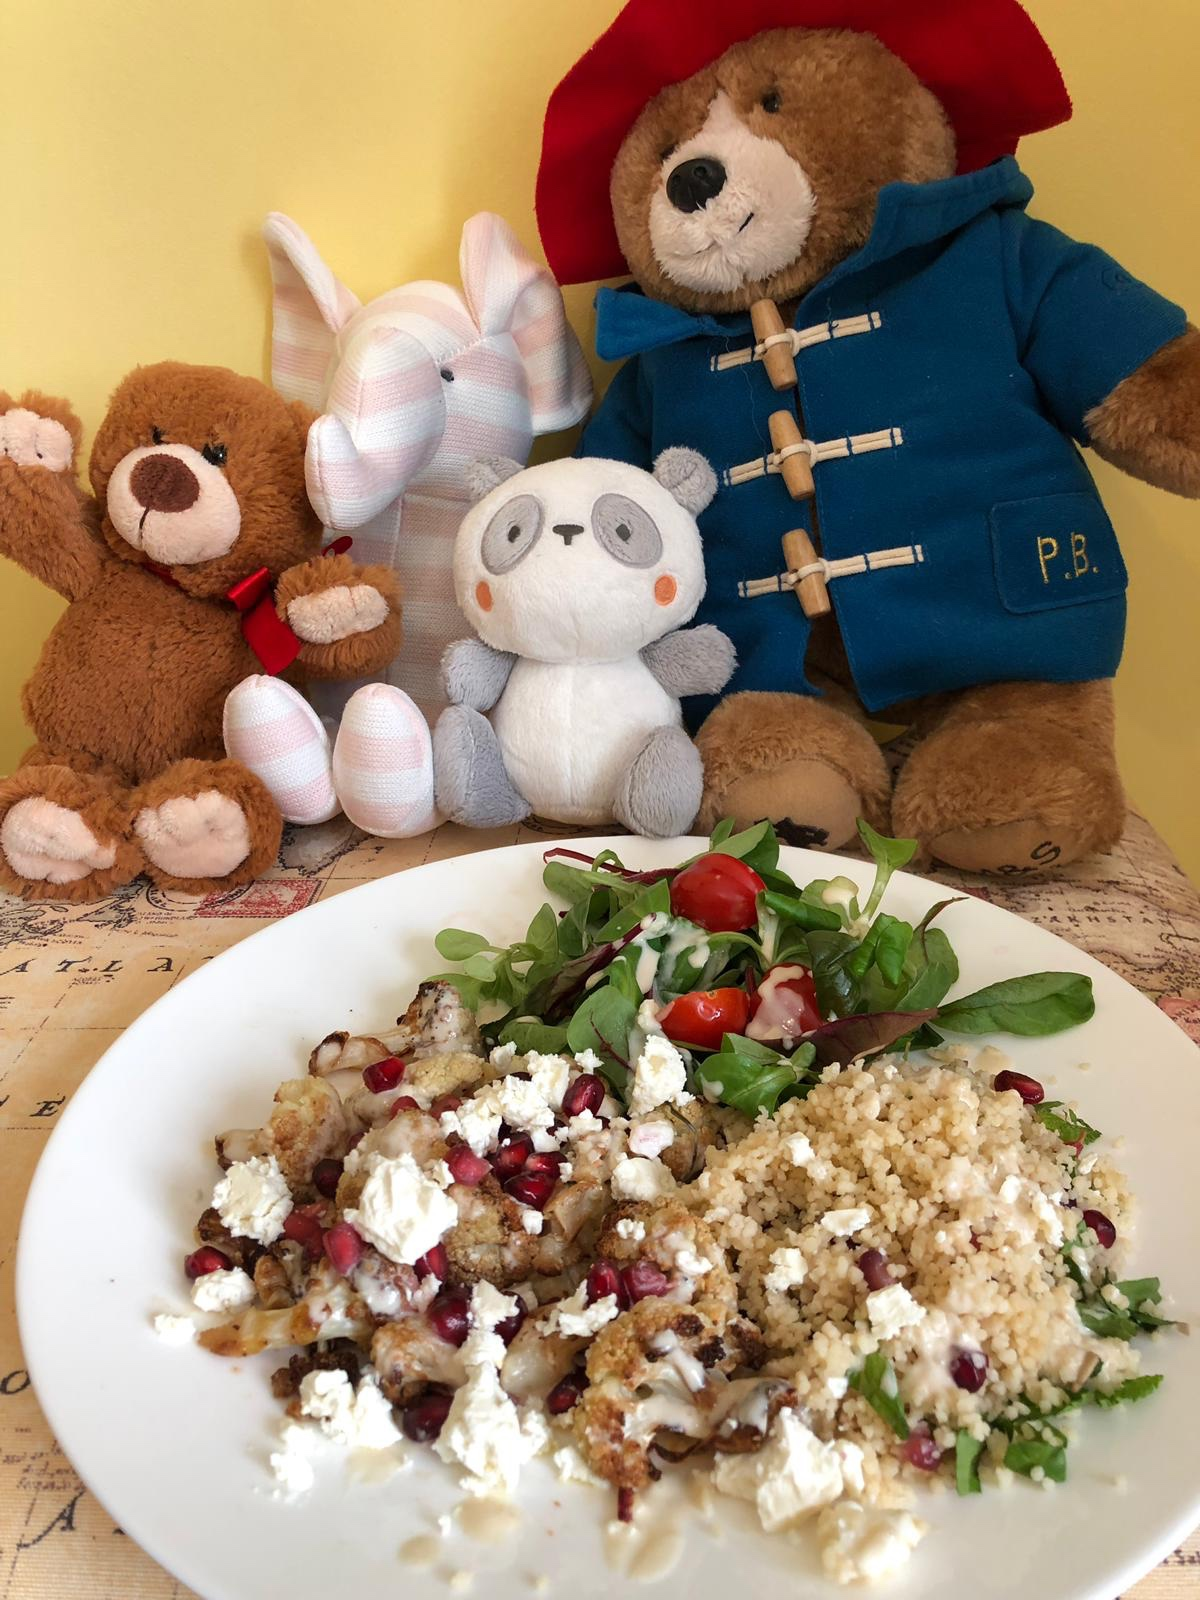 Recipe – Grown Up Teddy Bear's Picnic Cauliflower Salad